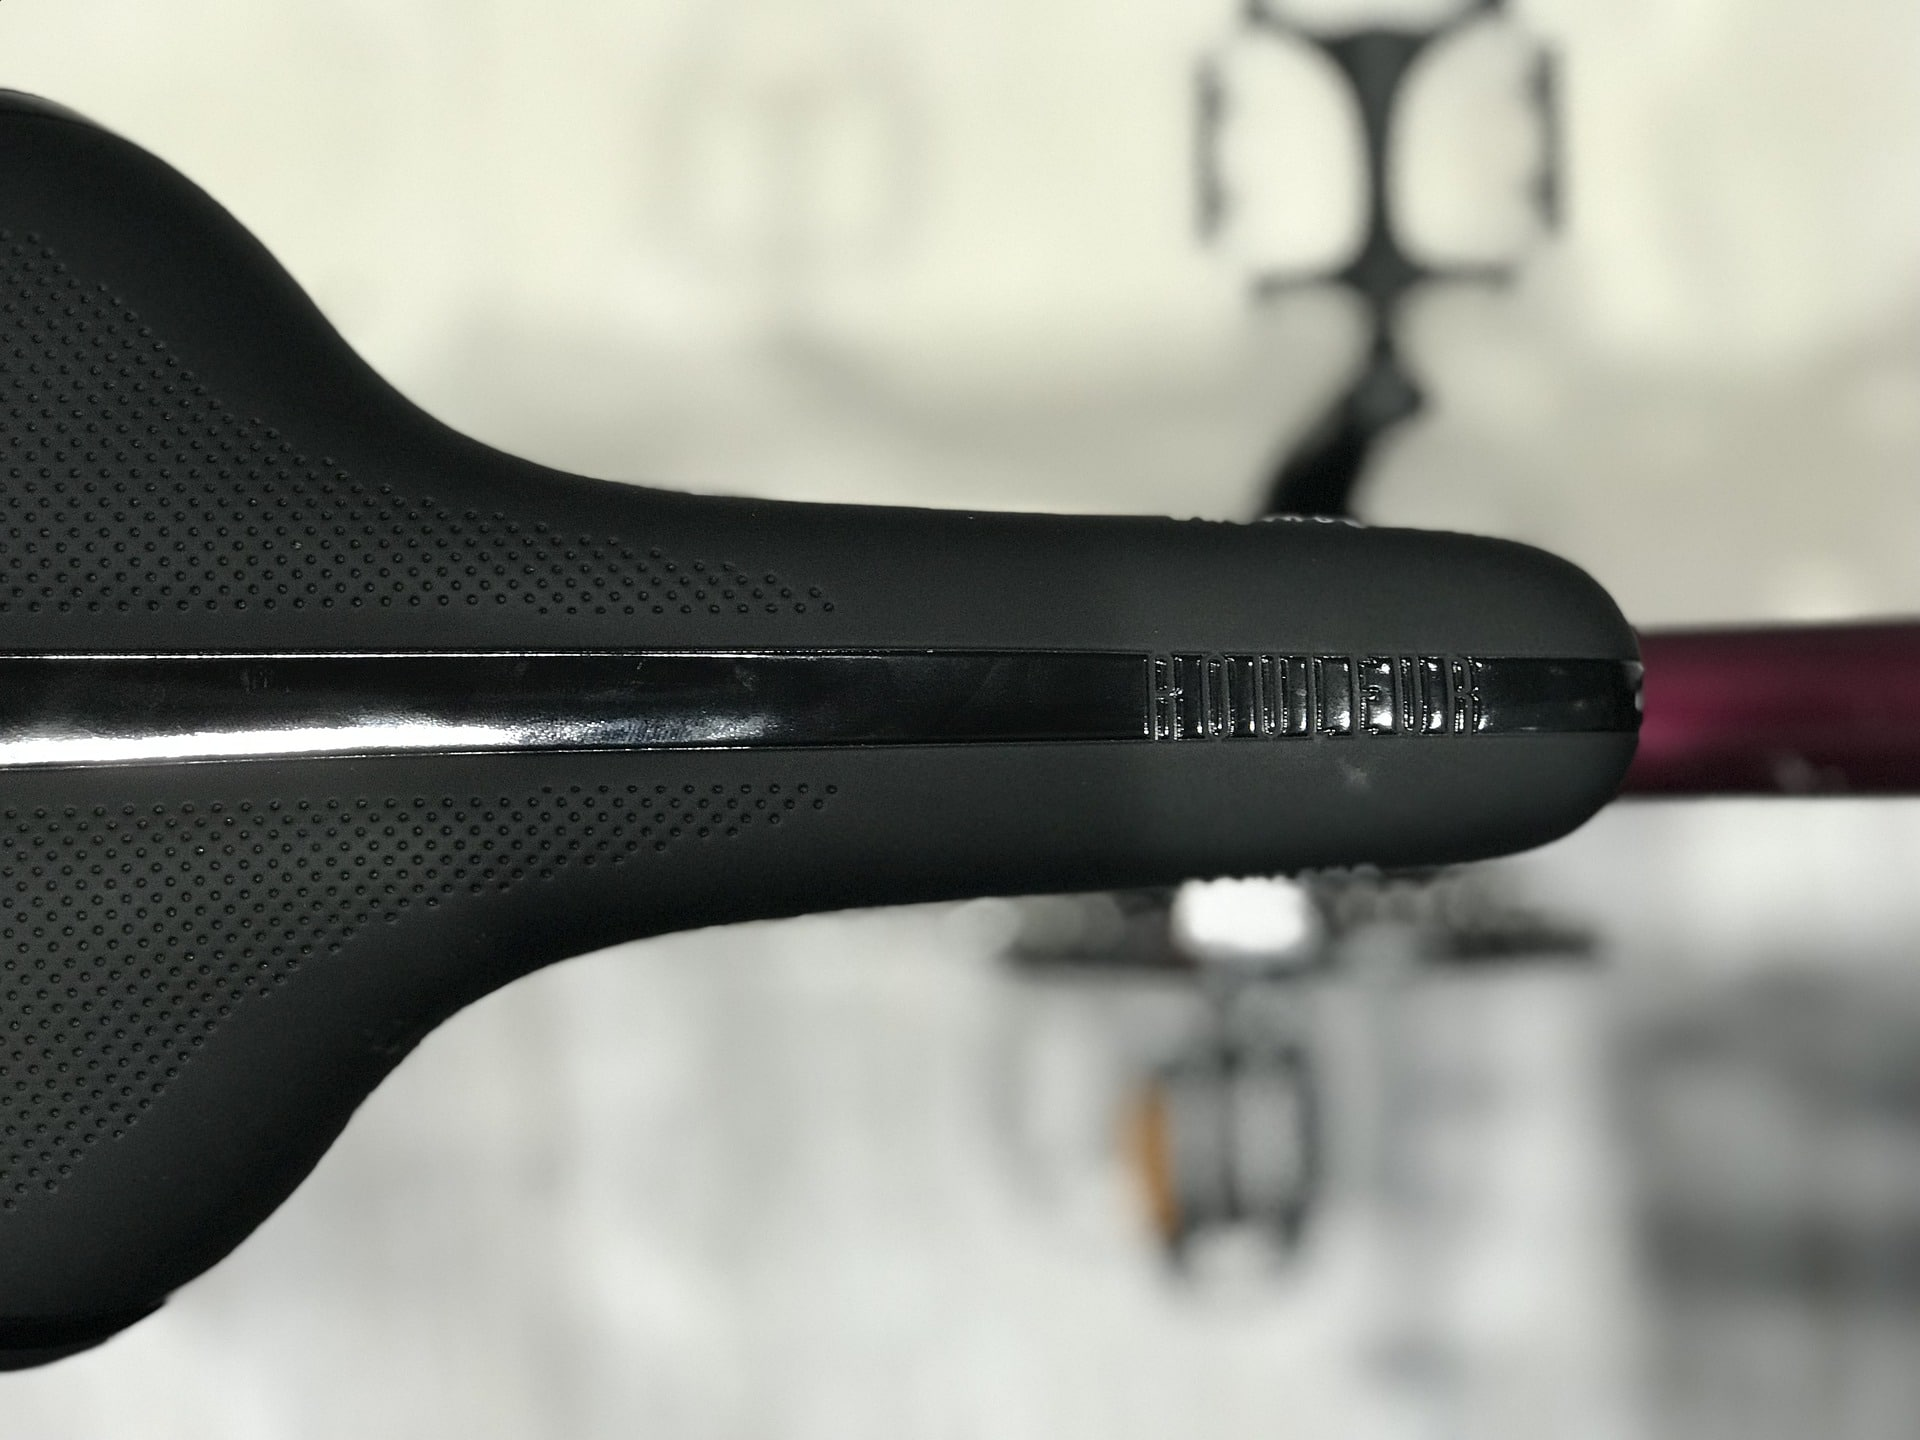 How To Find The Best Bike Saddle For Your Needs: A Buyer's Guide